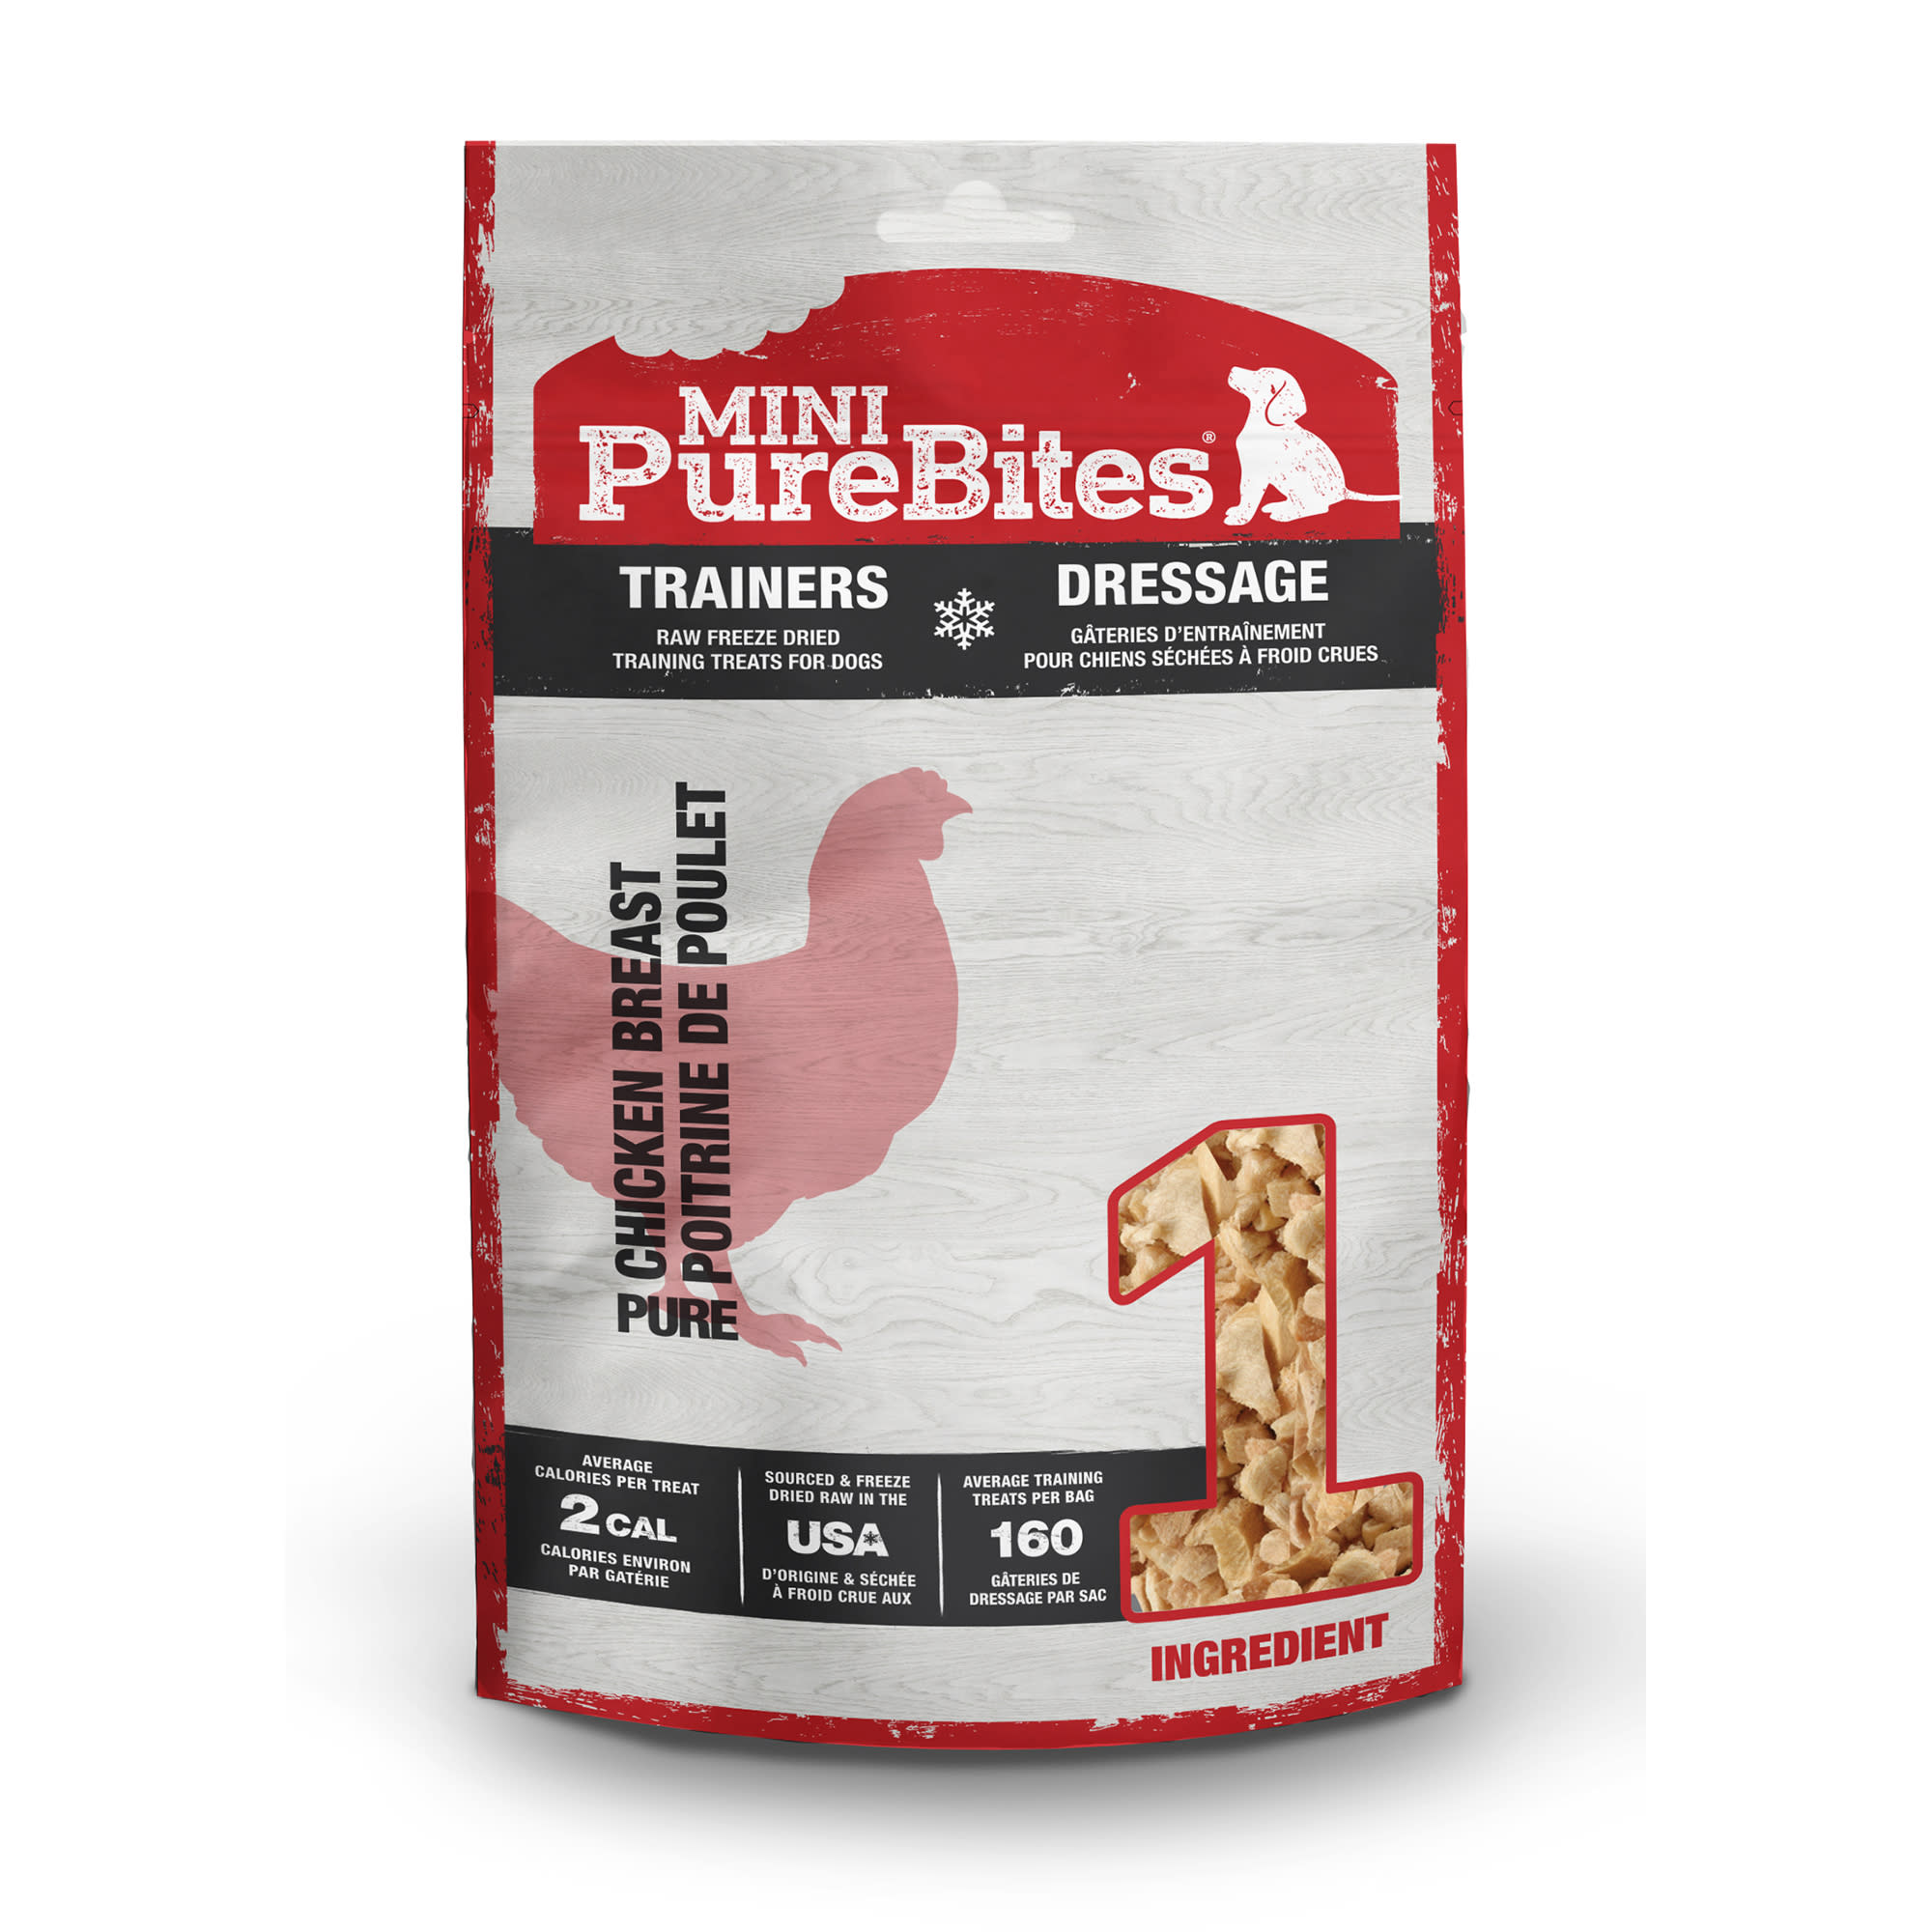 Go ahead, turn the bag around and look at our ingredients. Mini-PureBites RAW Freeze Dried Chicken Breast Trainers are made with only 1 ingredient; 100% Pure USA Sourced & Made Human Grade RAW Chicken Breast. Mini-PureBites Trainers offer pet parents the chance to train their dogs or treat their small dogs with specially cut pieces of RAW Chicken Breast.